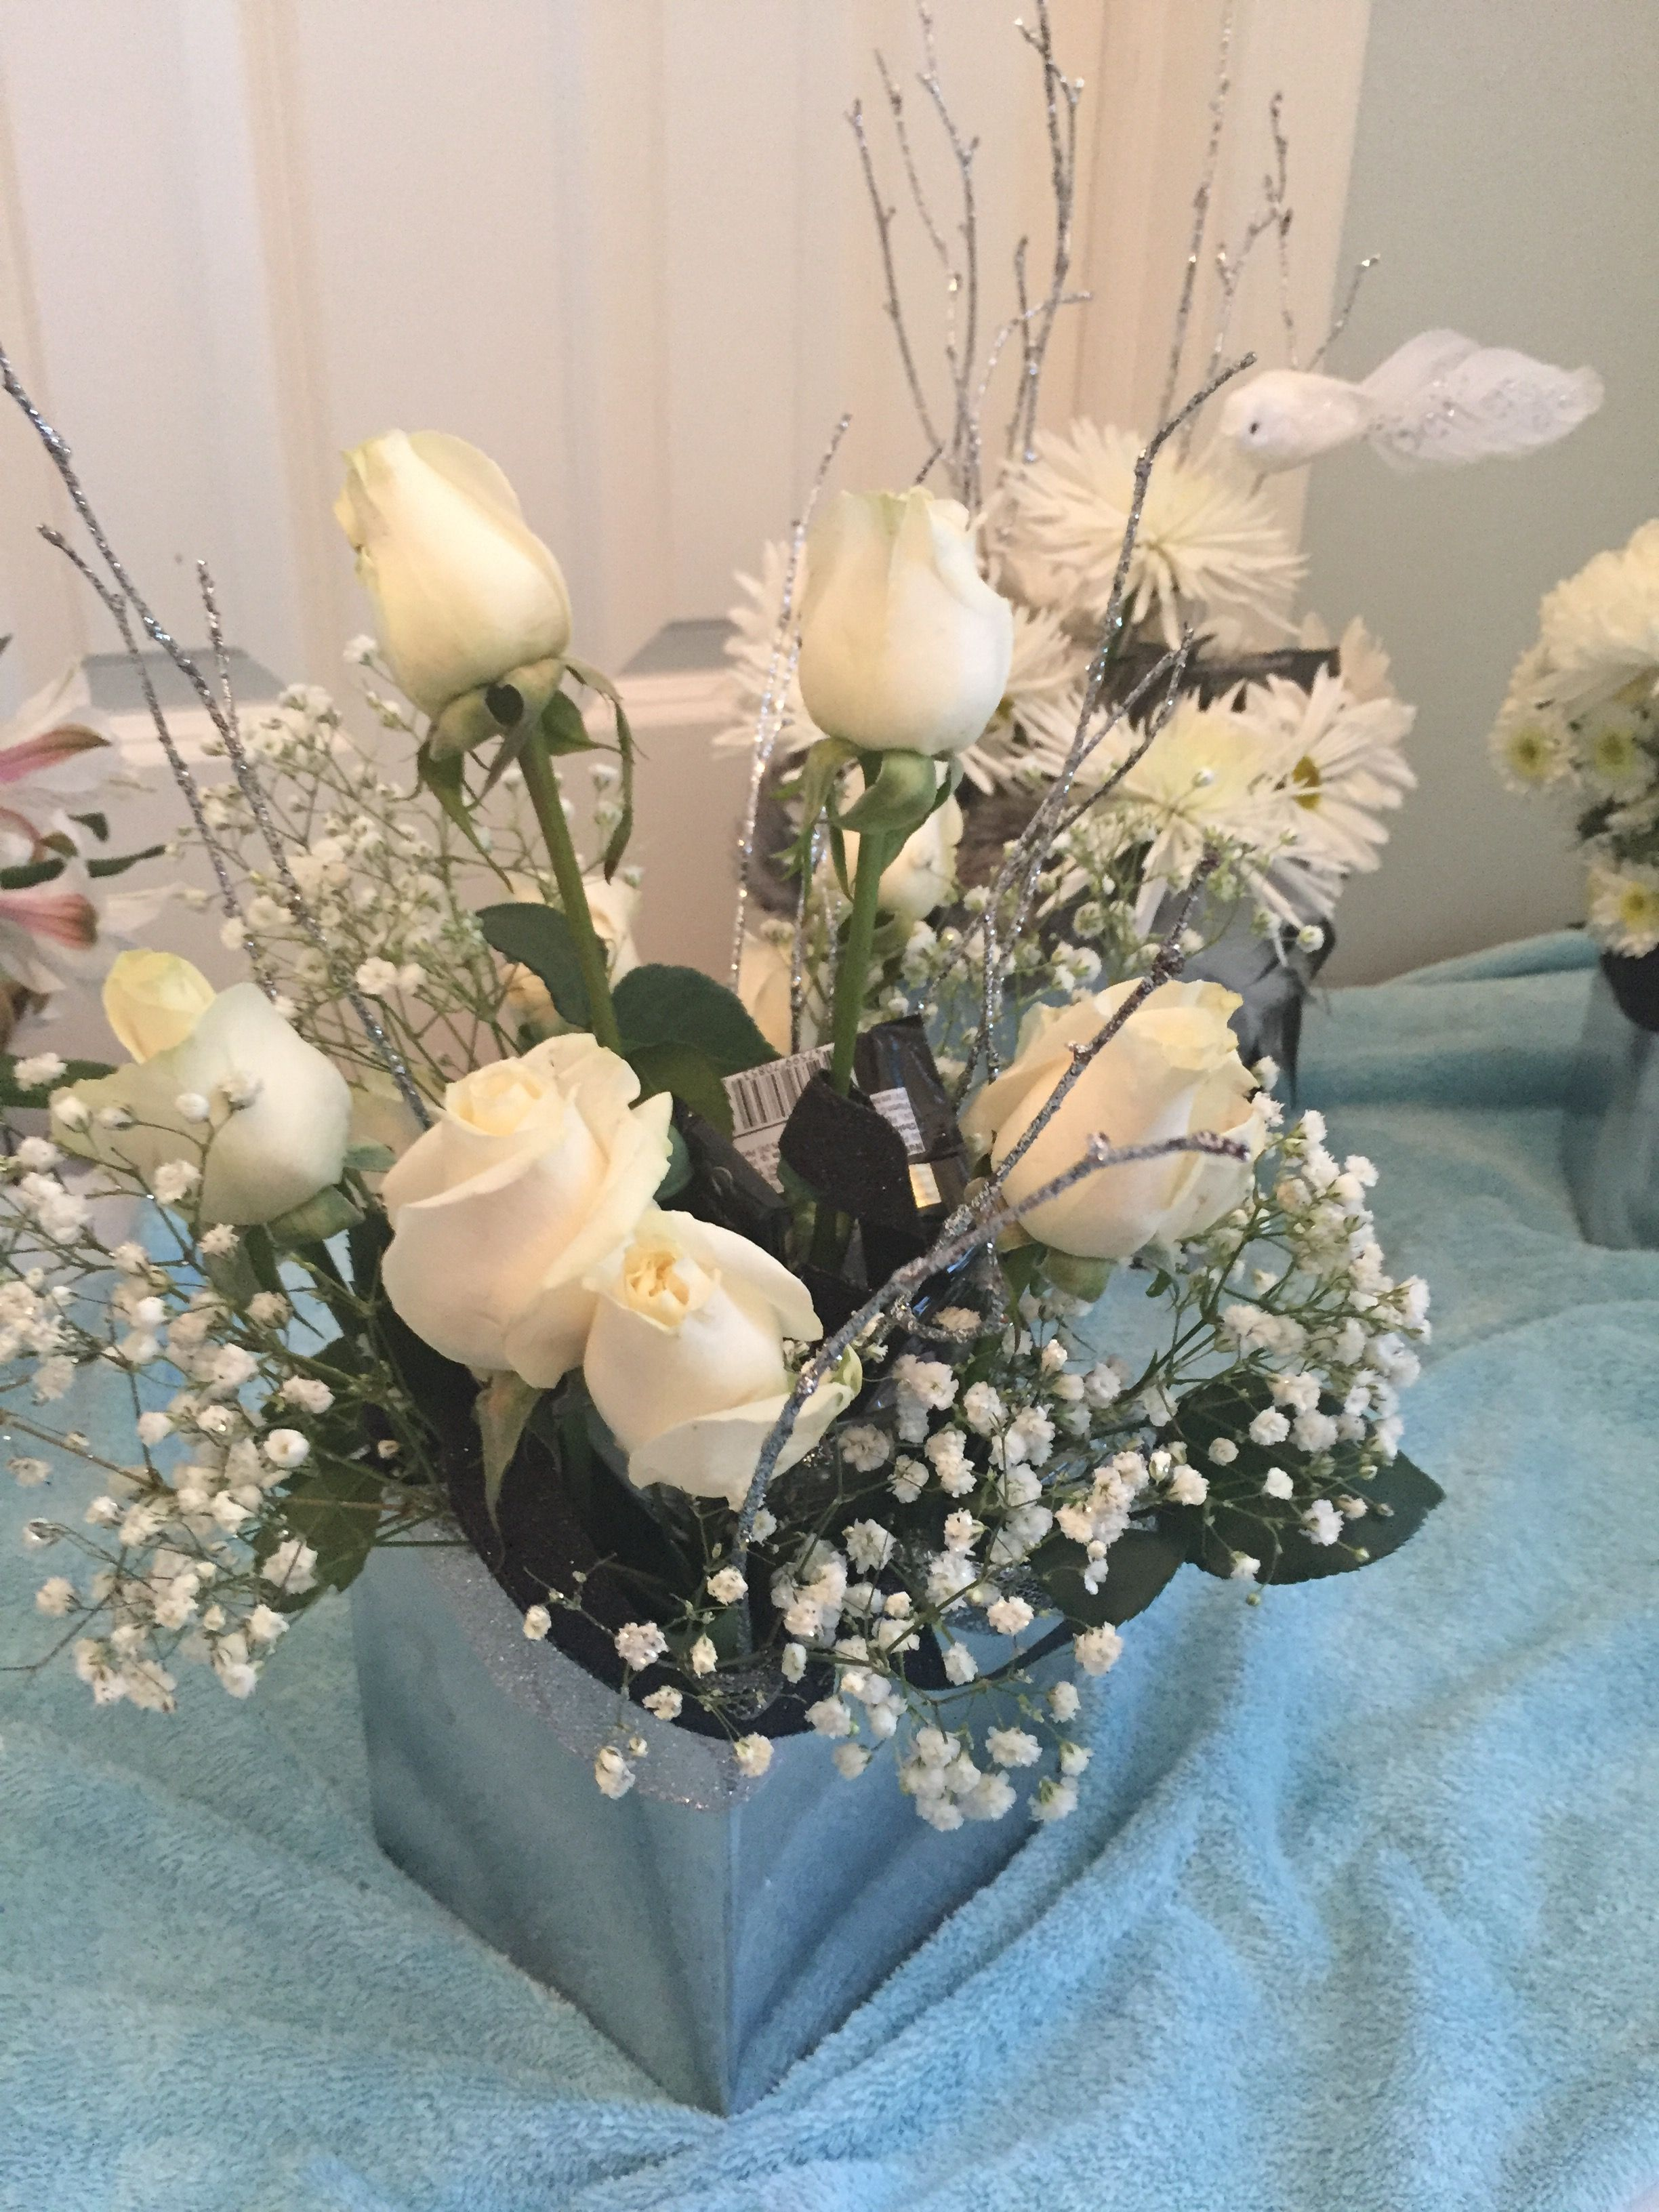 Daiquiri glass with rhinestones and chocolate surrounded by white roses baby's breath and branches,